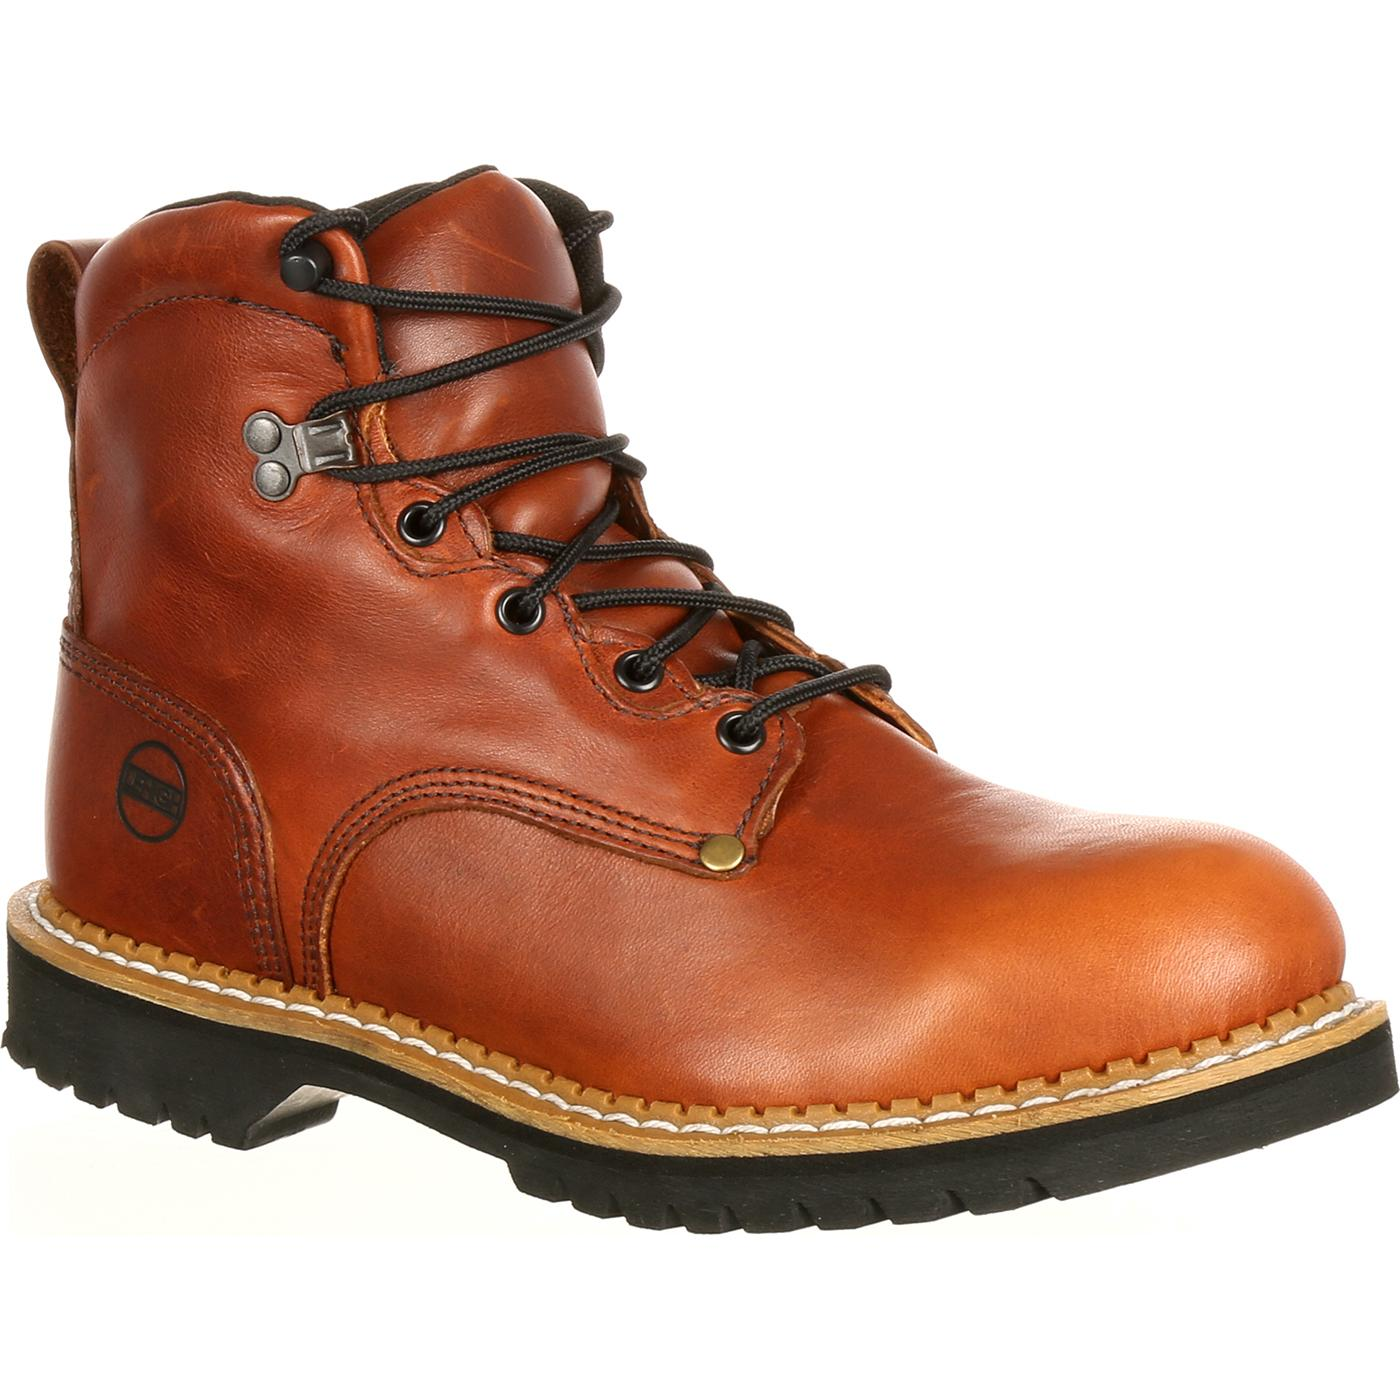 Lehigh Valley Steel Toe Shoes